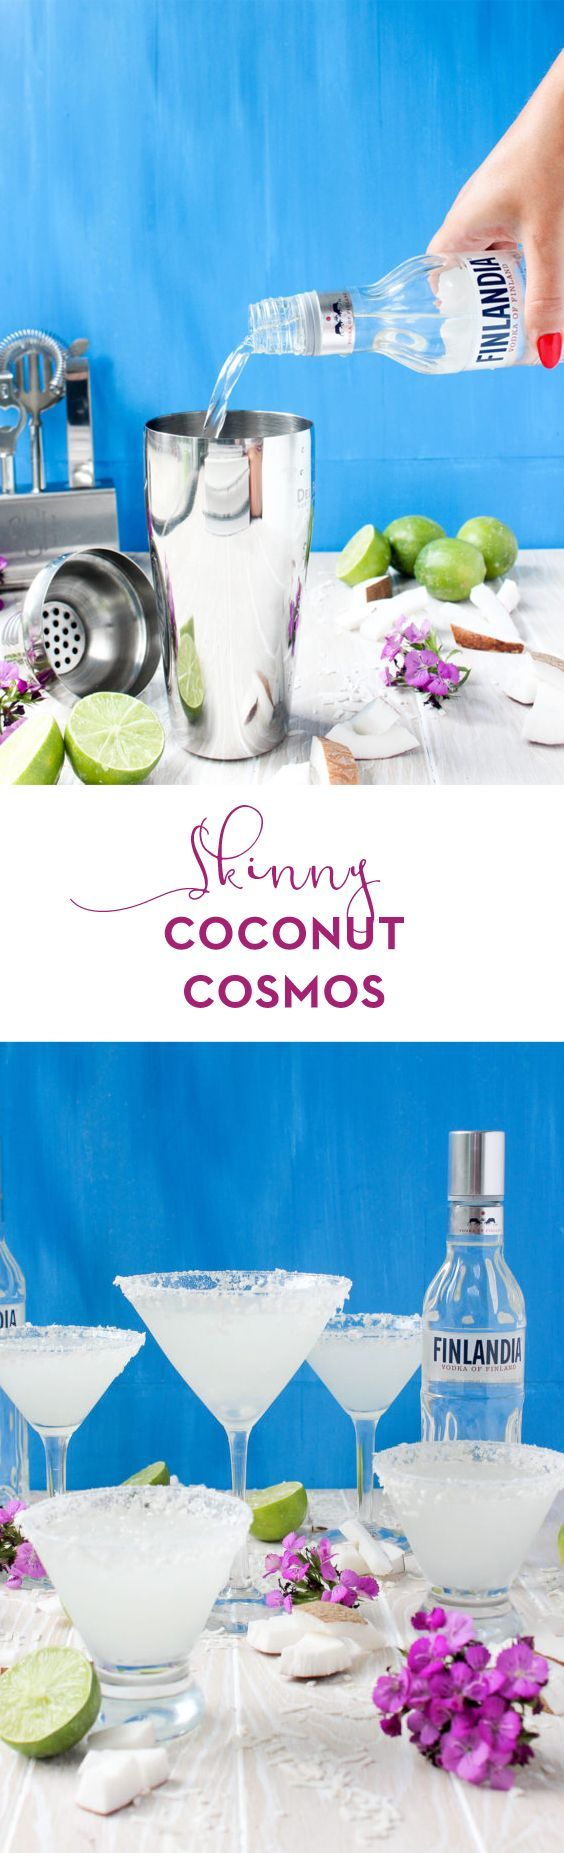 Ready in just 5 minutes and needing only 5 ingredients, these Skinny Coconut Cosmos are a refreshing, diet-friendly taste of summer! Tropical and delicious.  @finlandiavodka #sponsored #21+